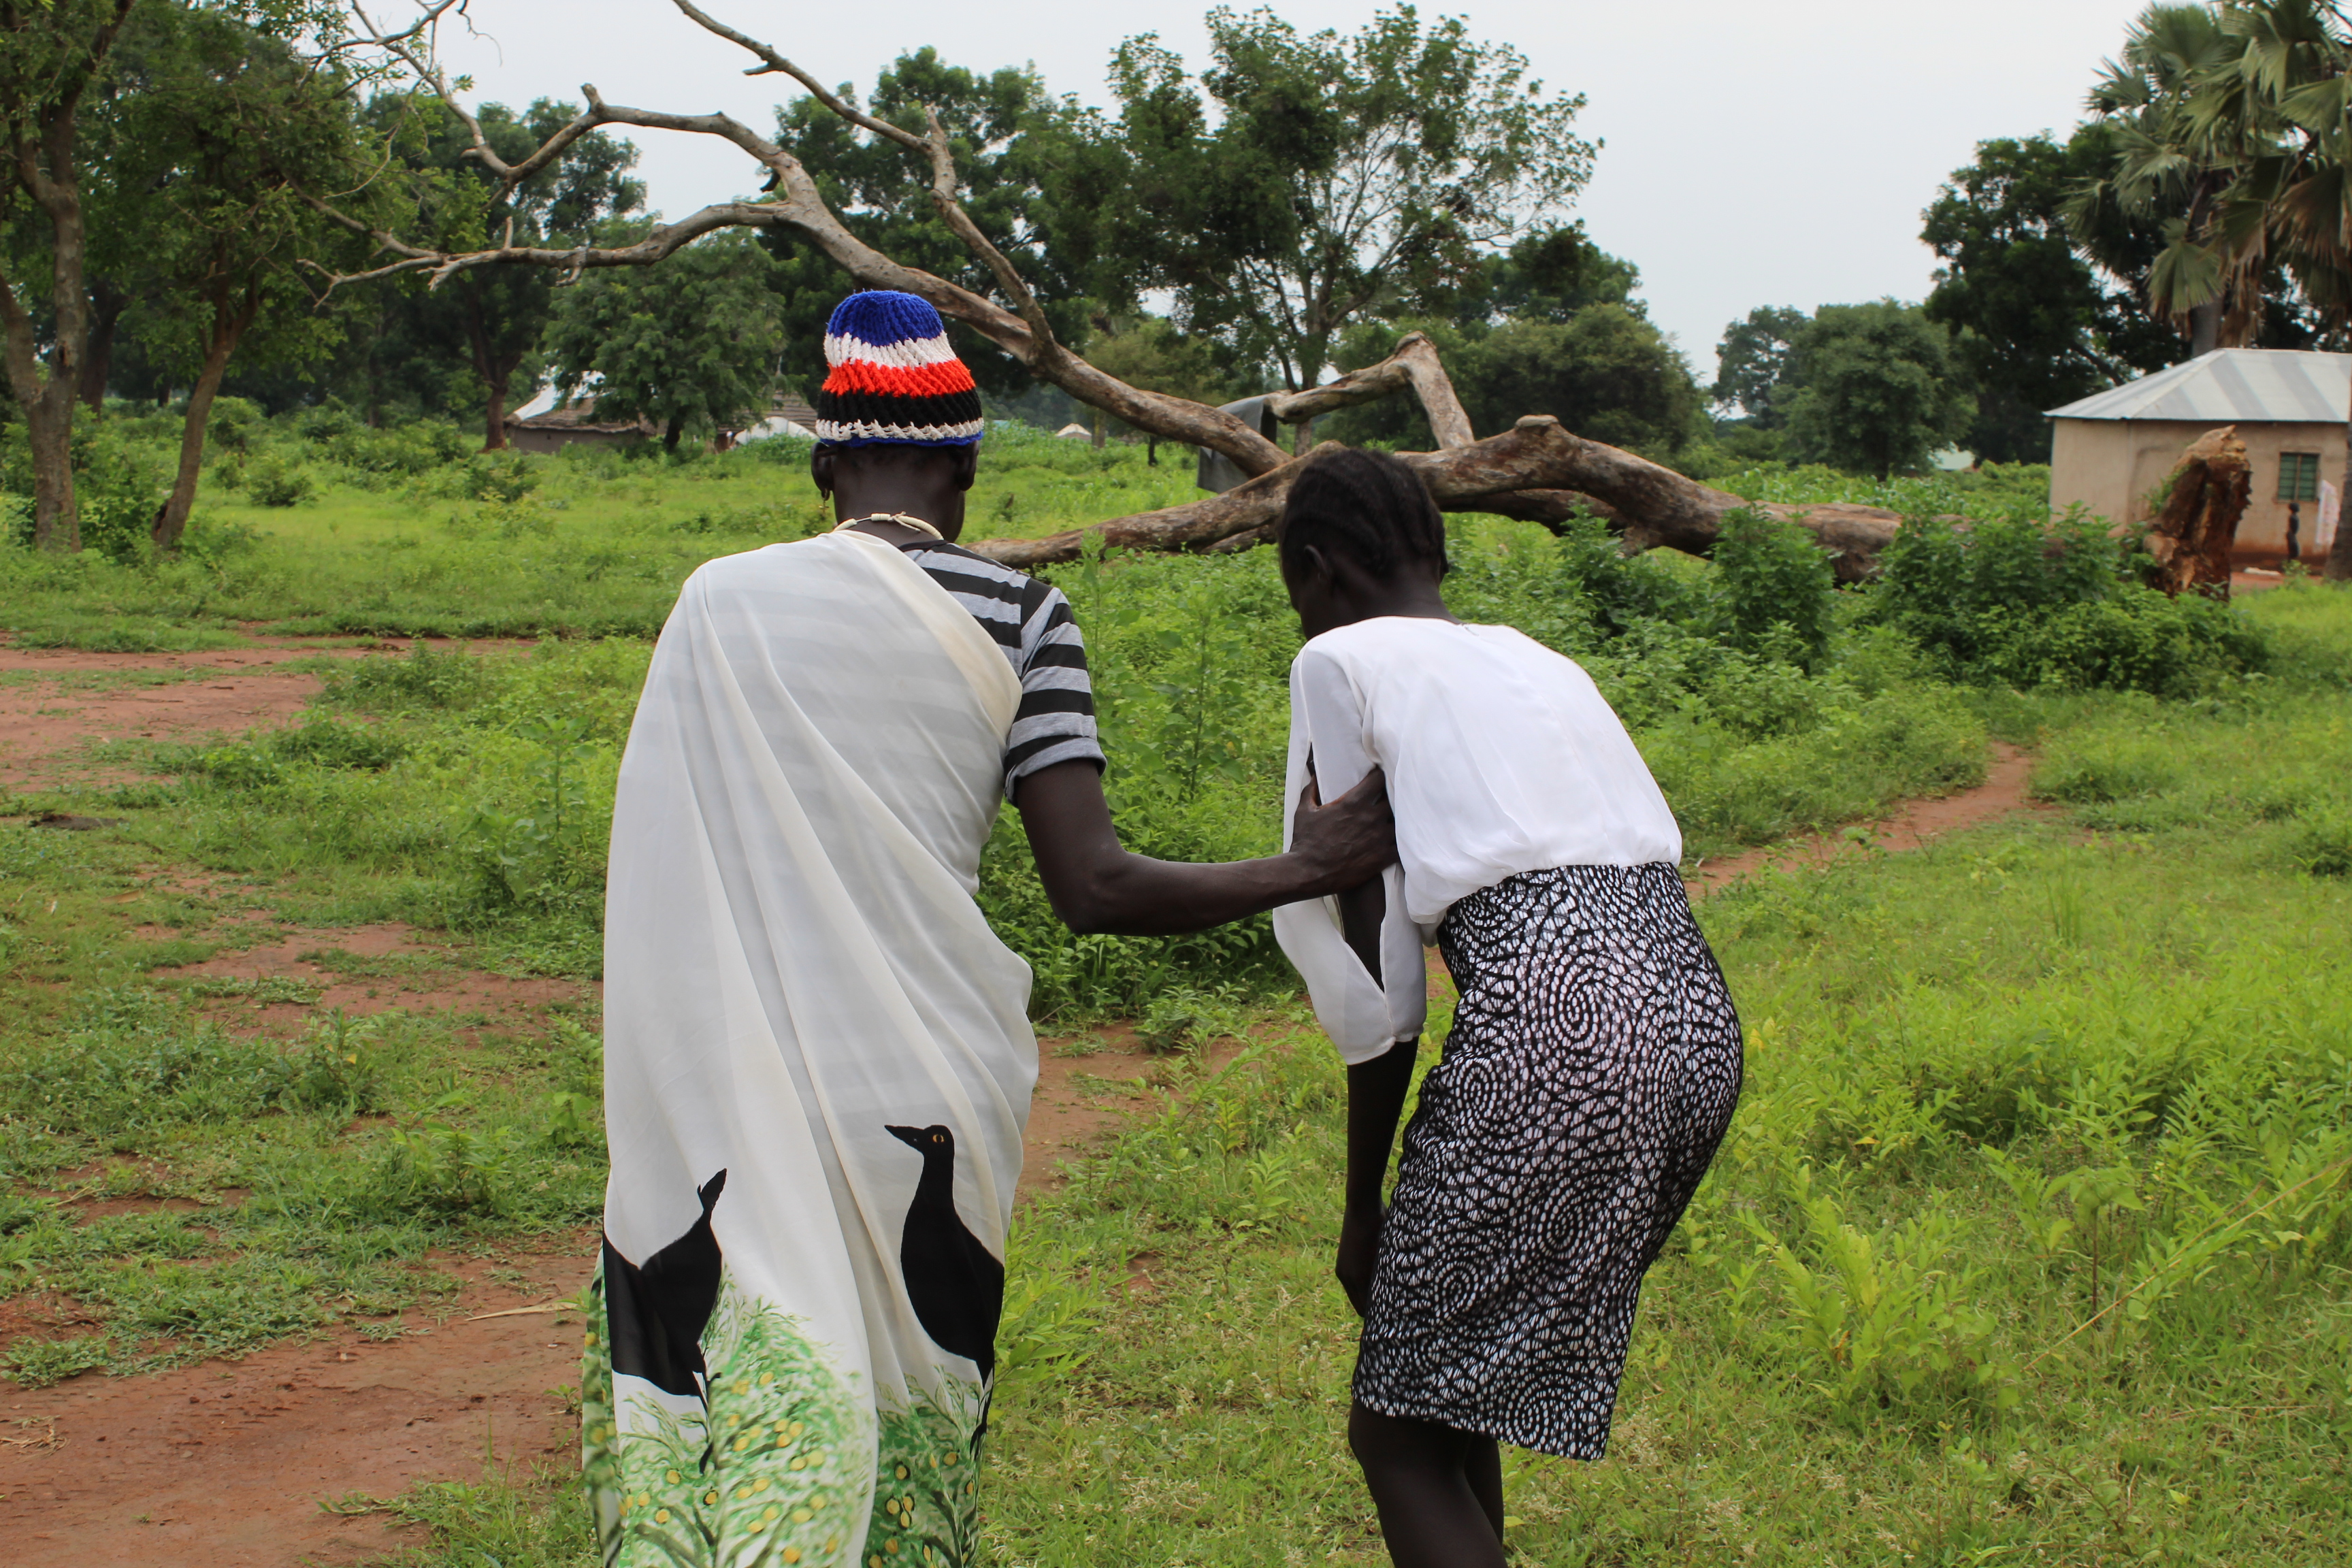 STRENGTHENING GBV CASE MANAGEMENT THROUGH COMMUNITY CARE AND PSS